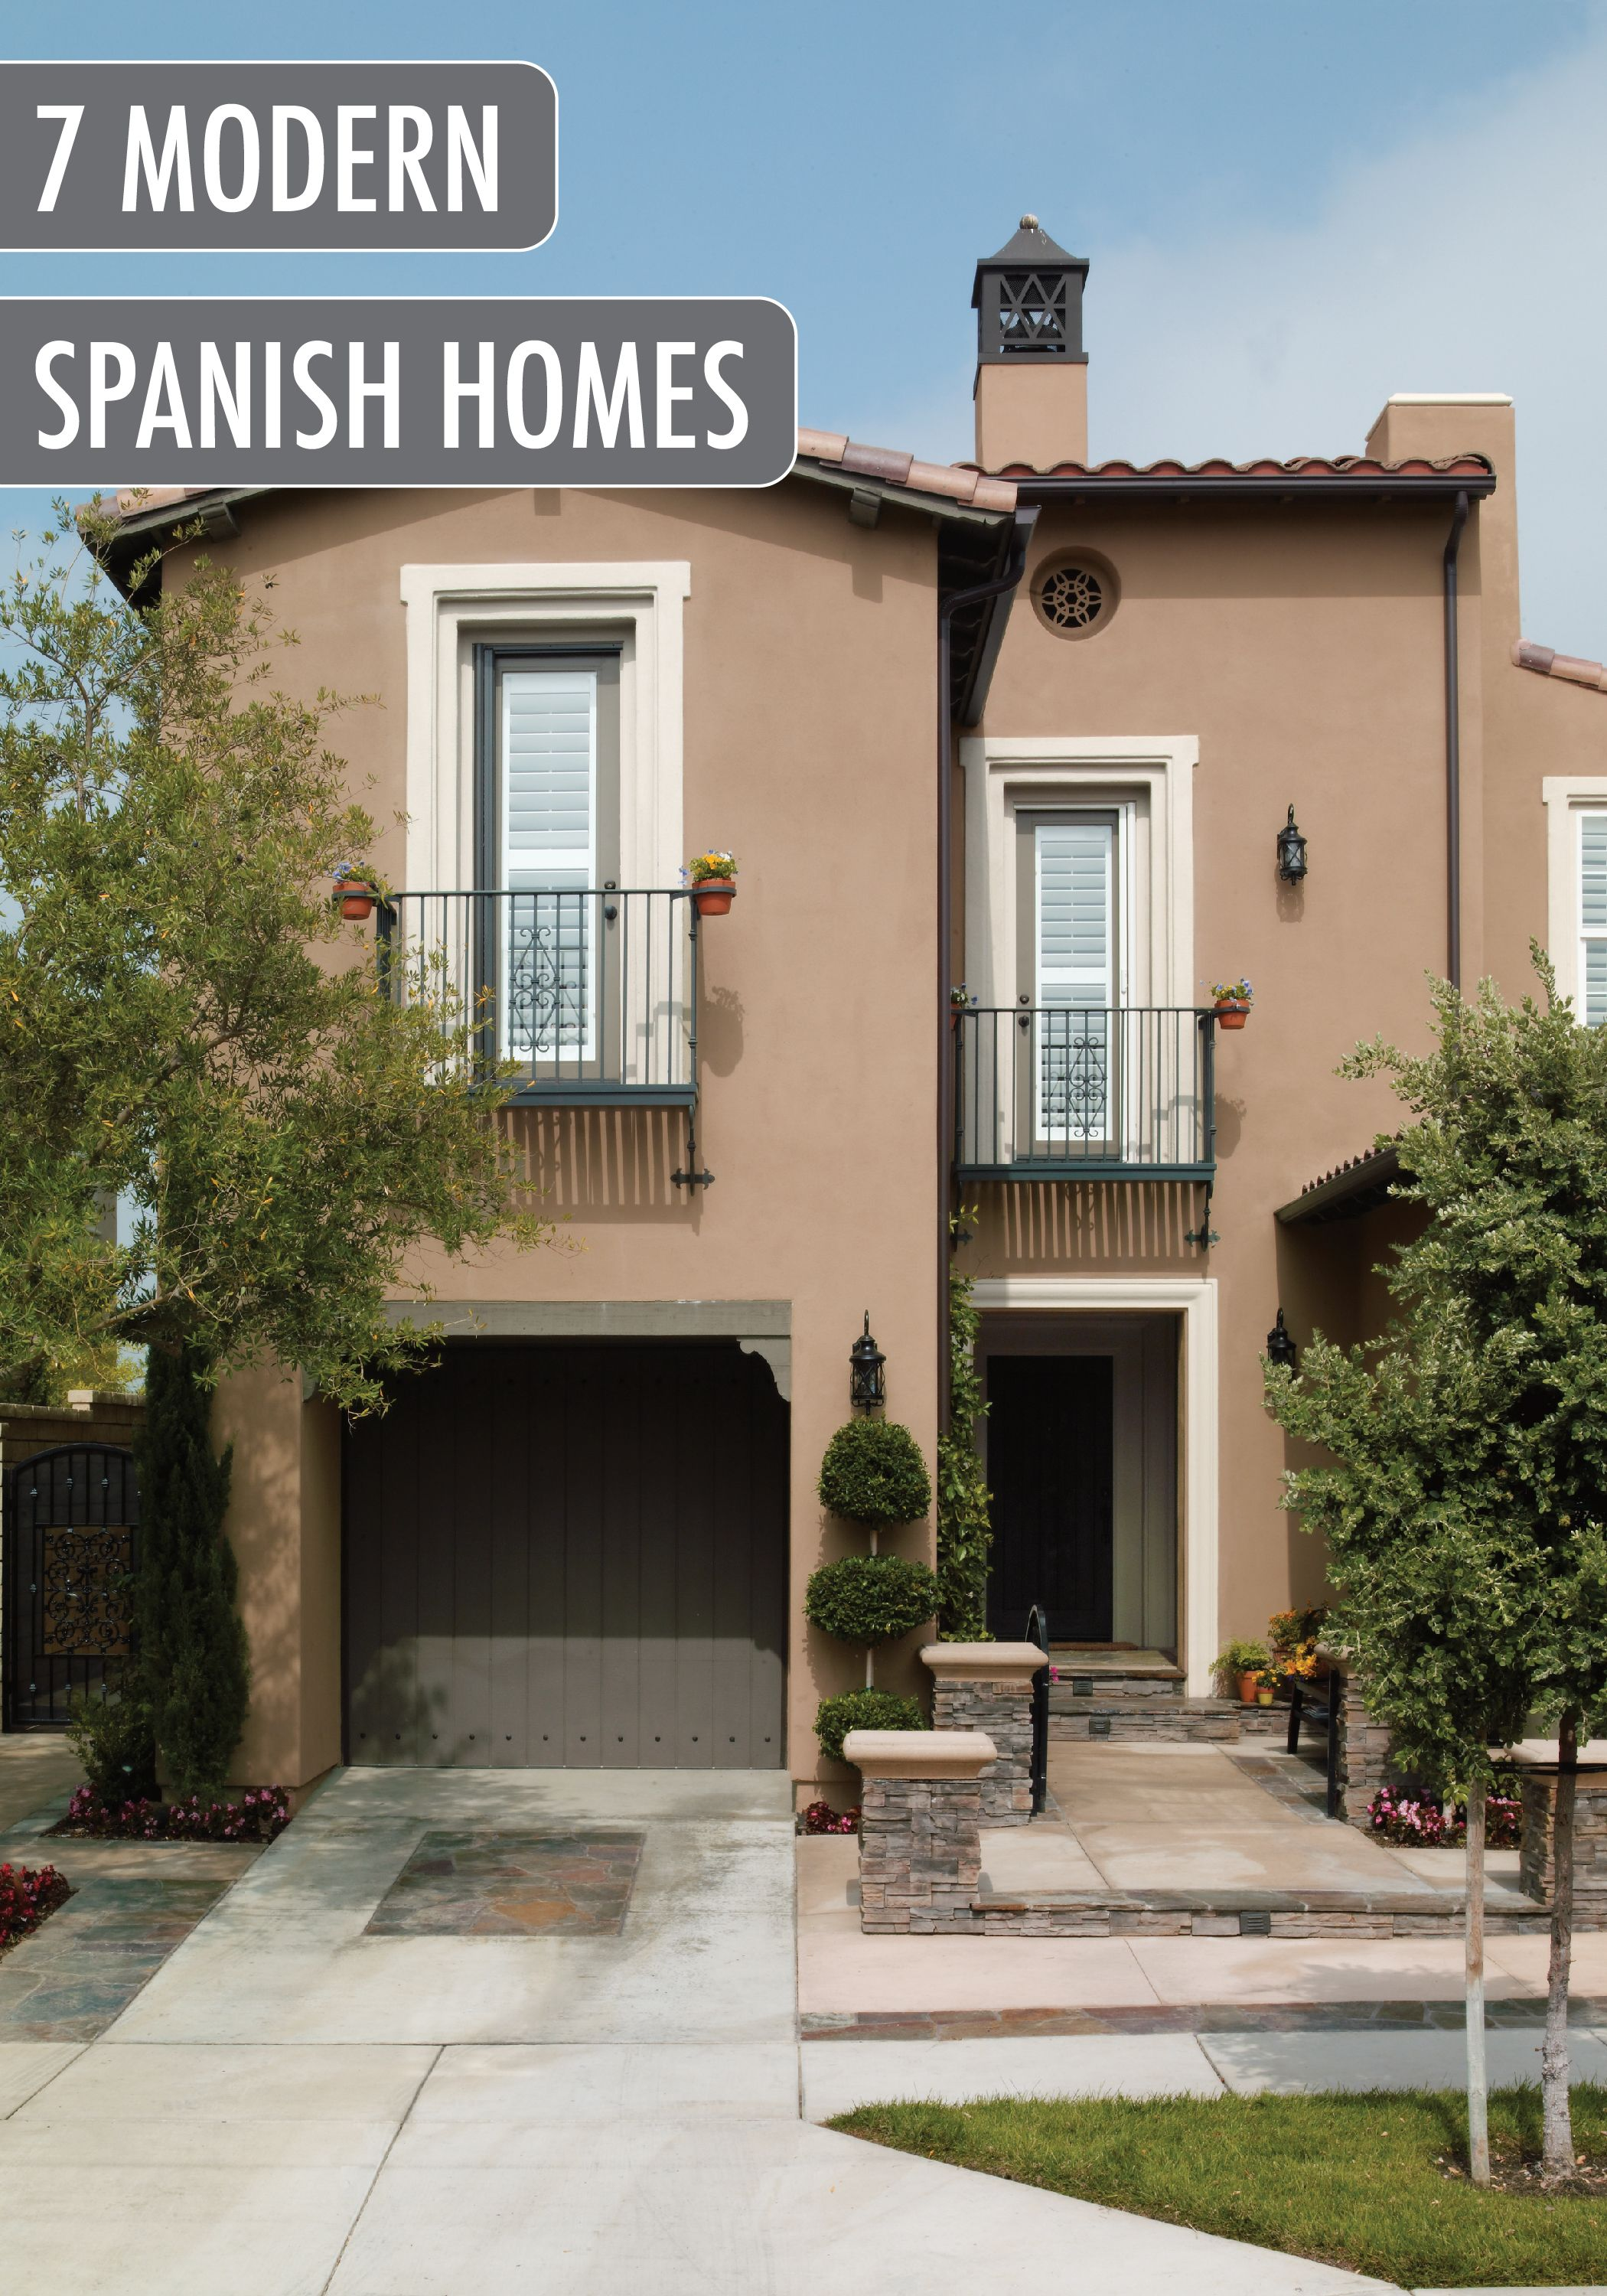 Embrace The Southwestern Architecture Of Your Home In A